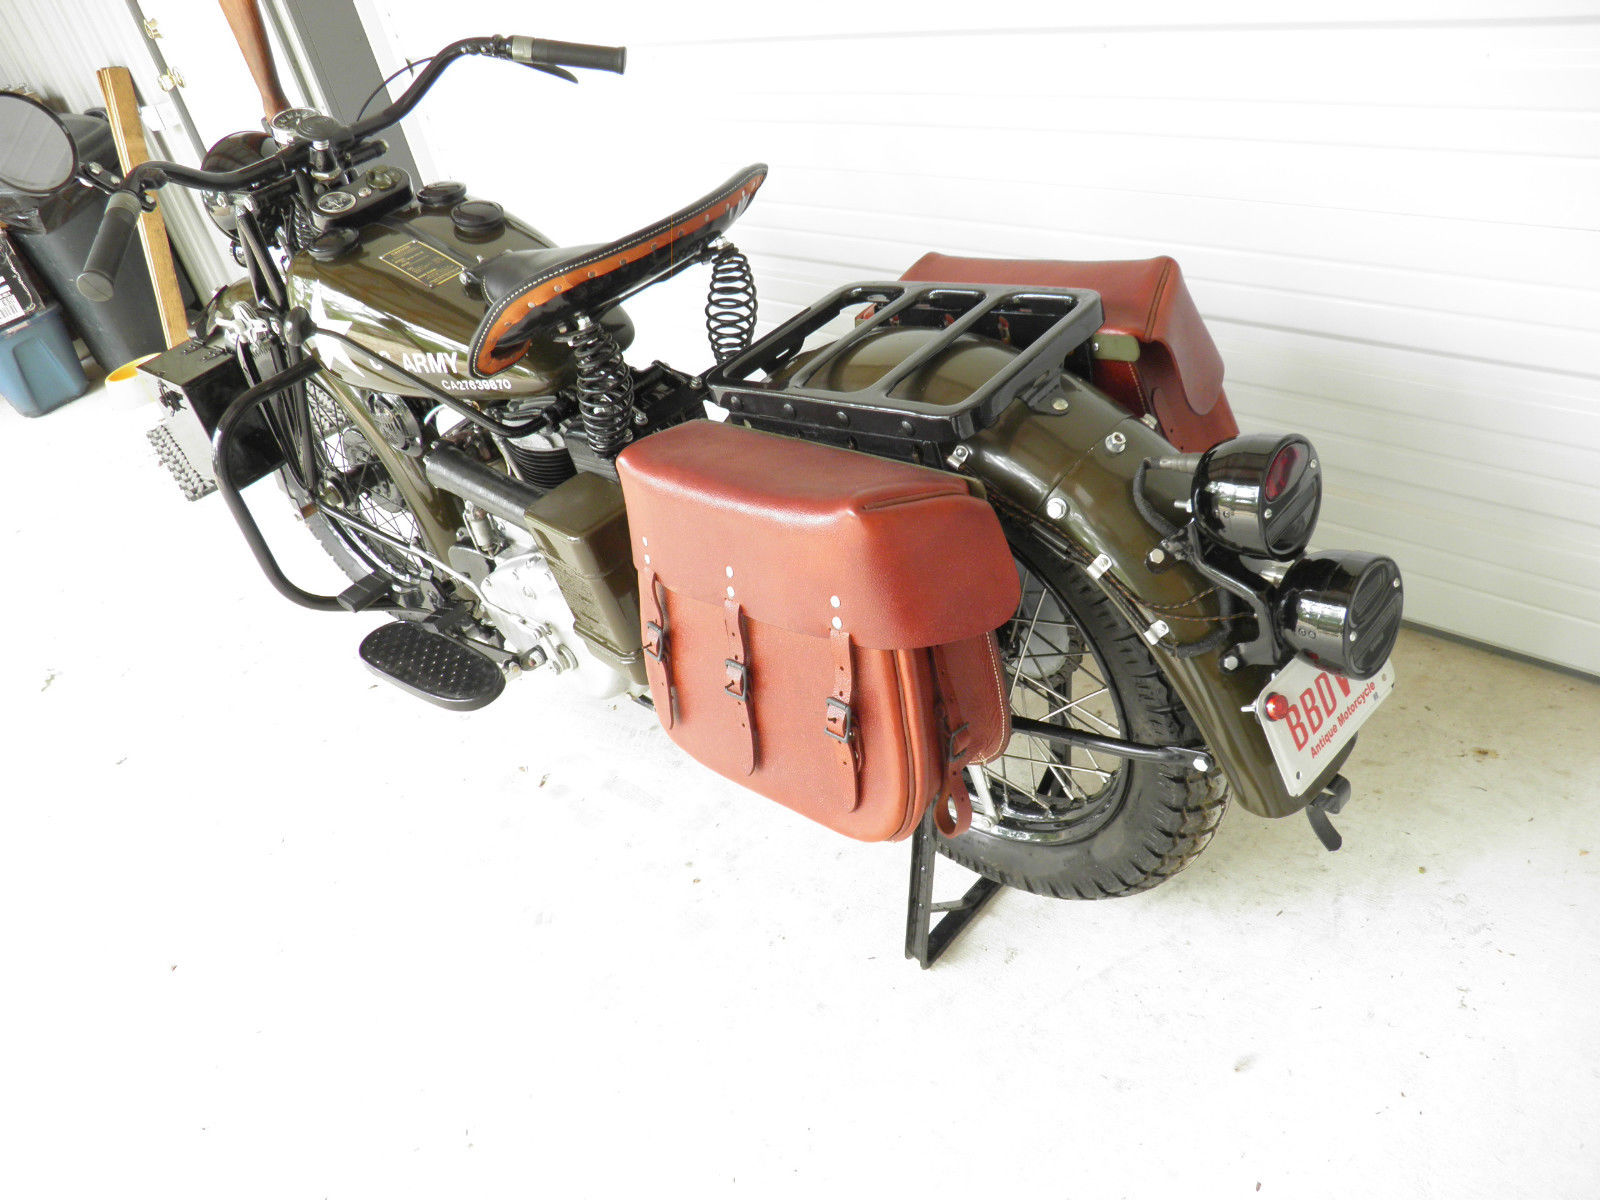 The sale bike appears to have all the original equipment including black out lights. (Picture courtesy eBay).